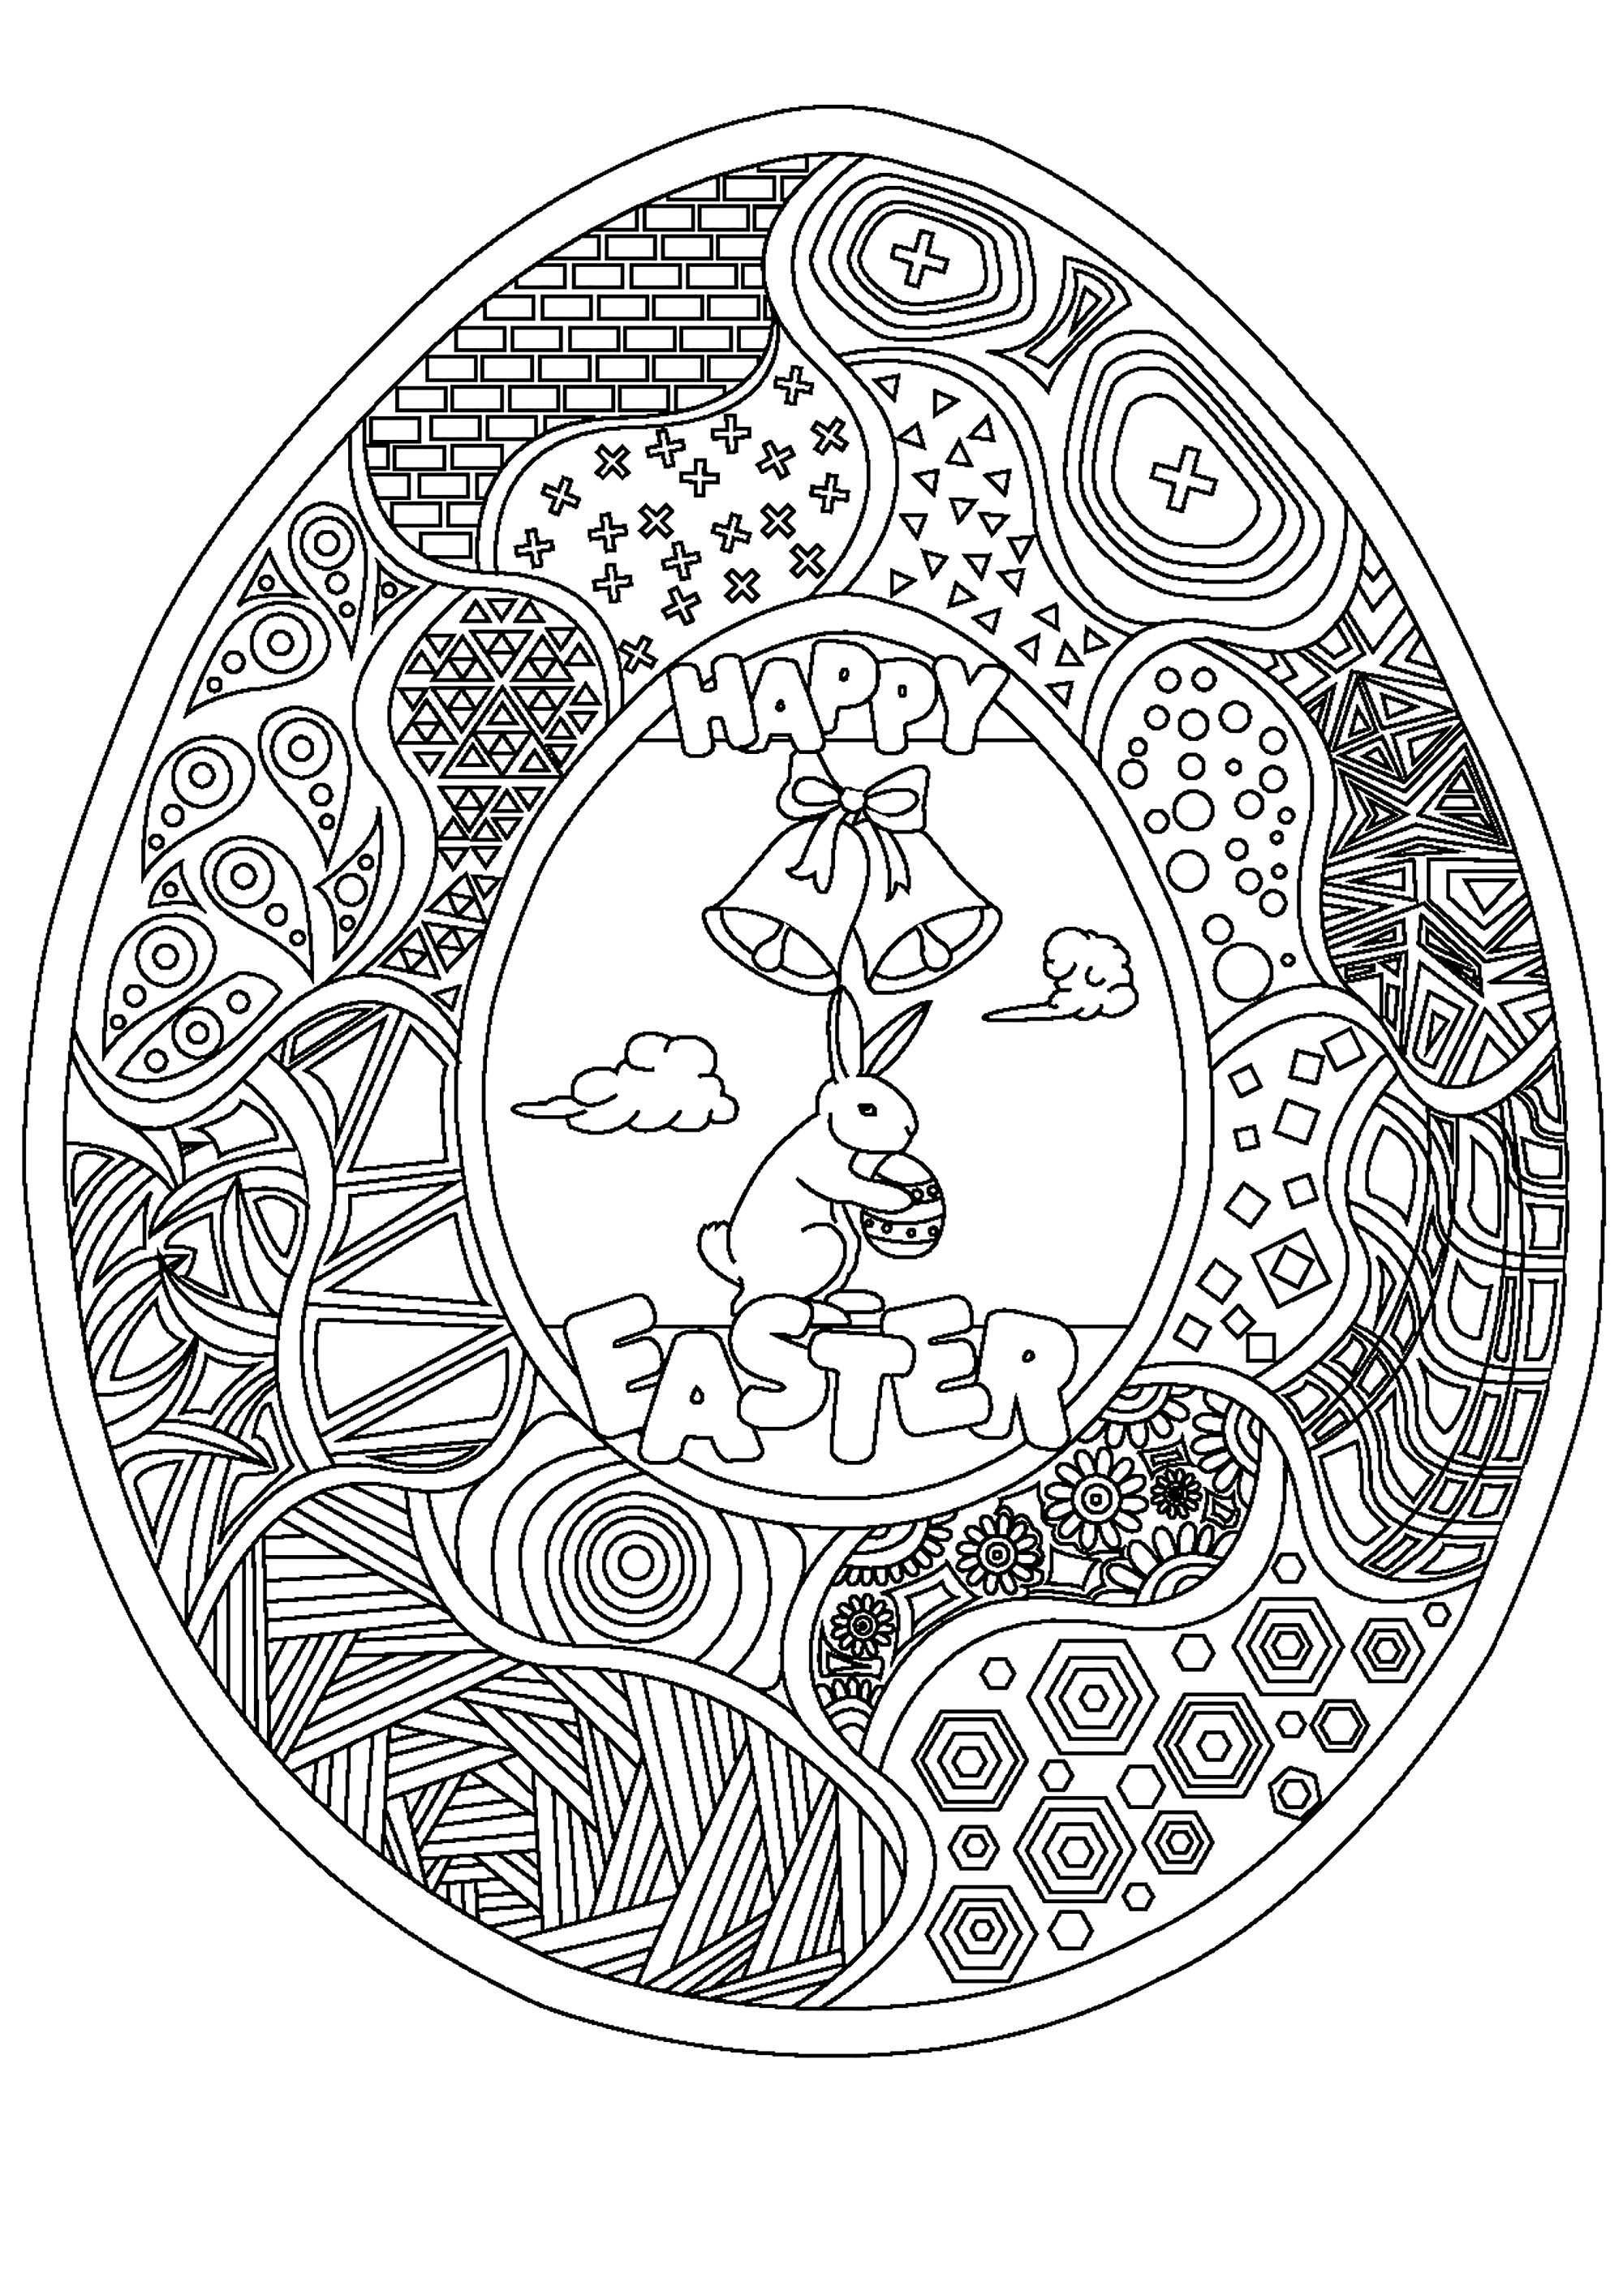 Easter egg coloring page with many patterns, a cute bunny and two bells